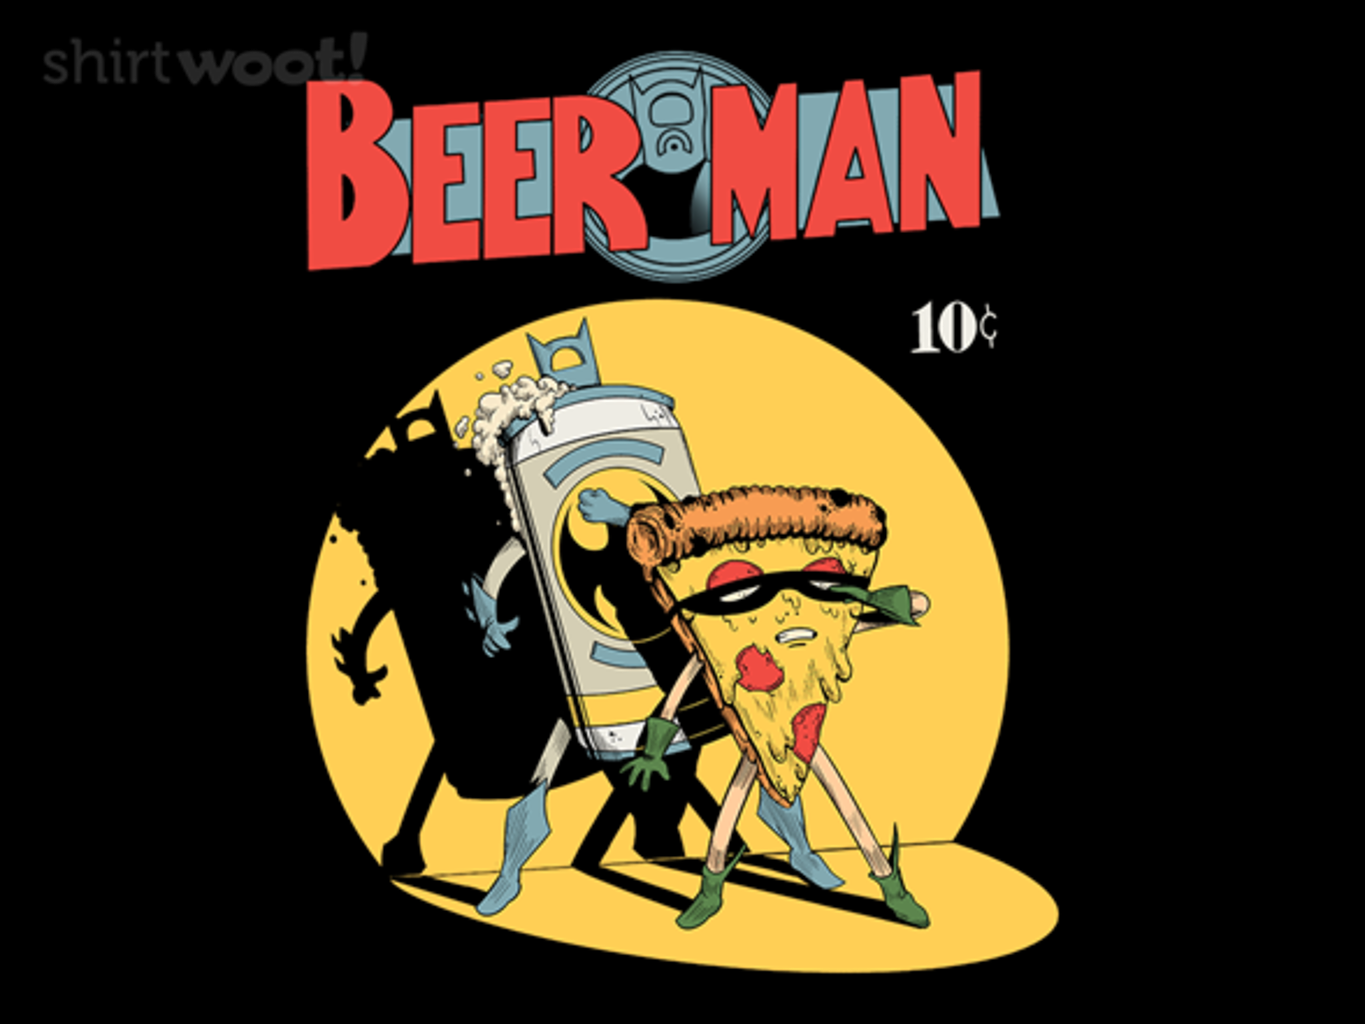 Woot!: Beer Man